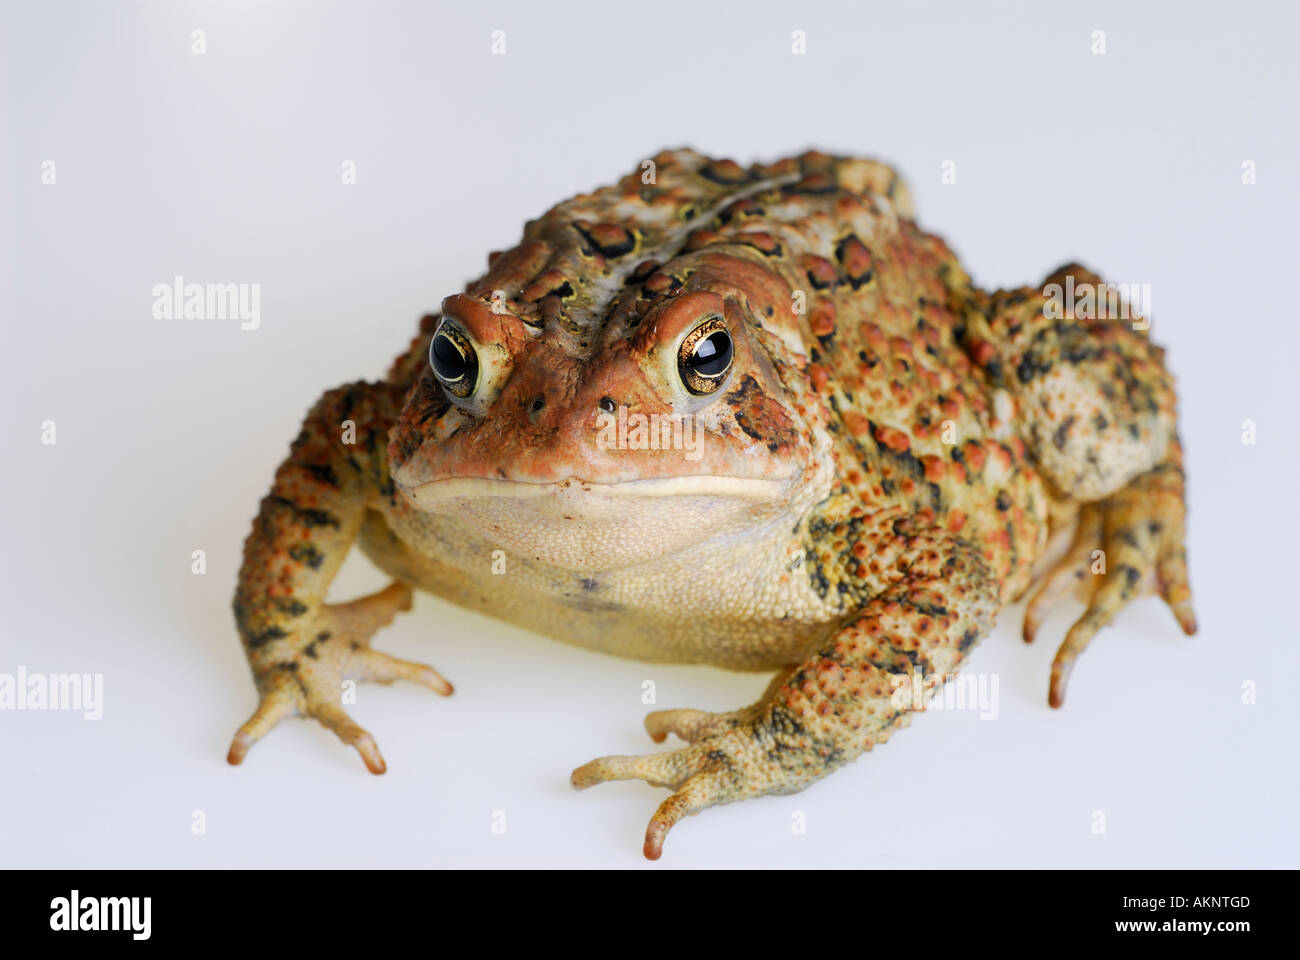 Fat American Toad Bufo americanus staring back on white background - Stock Image